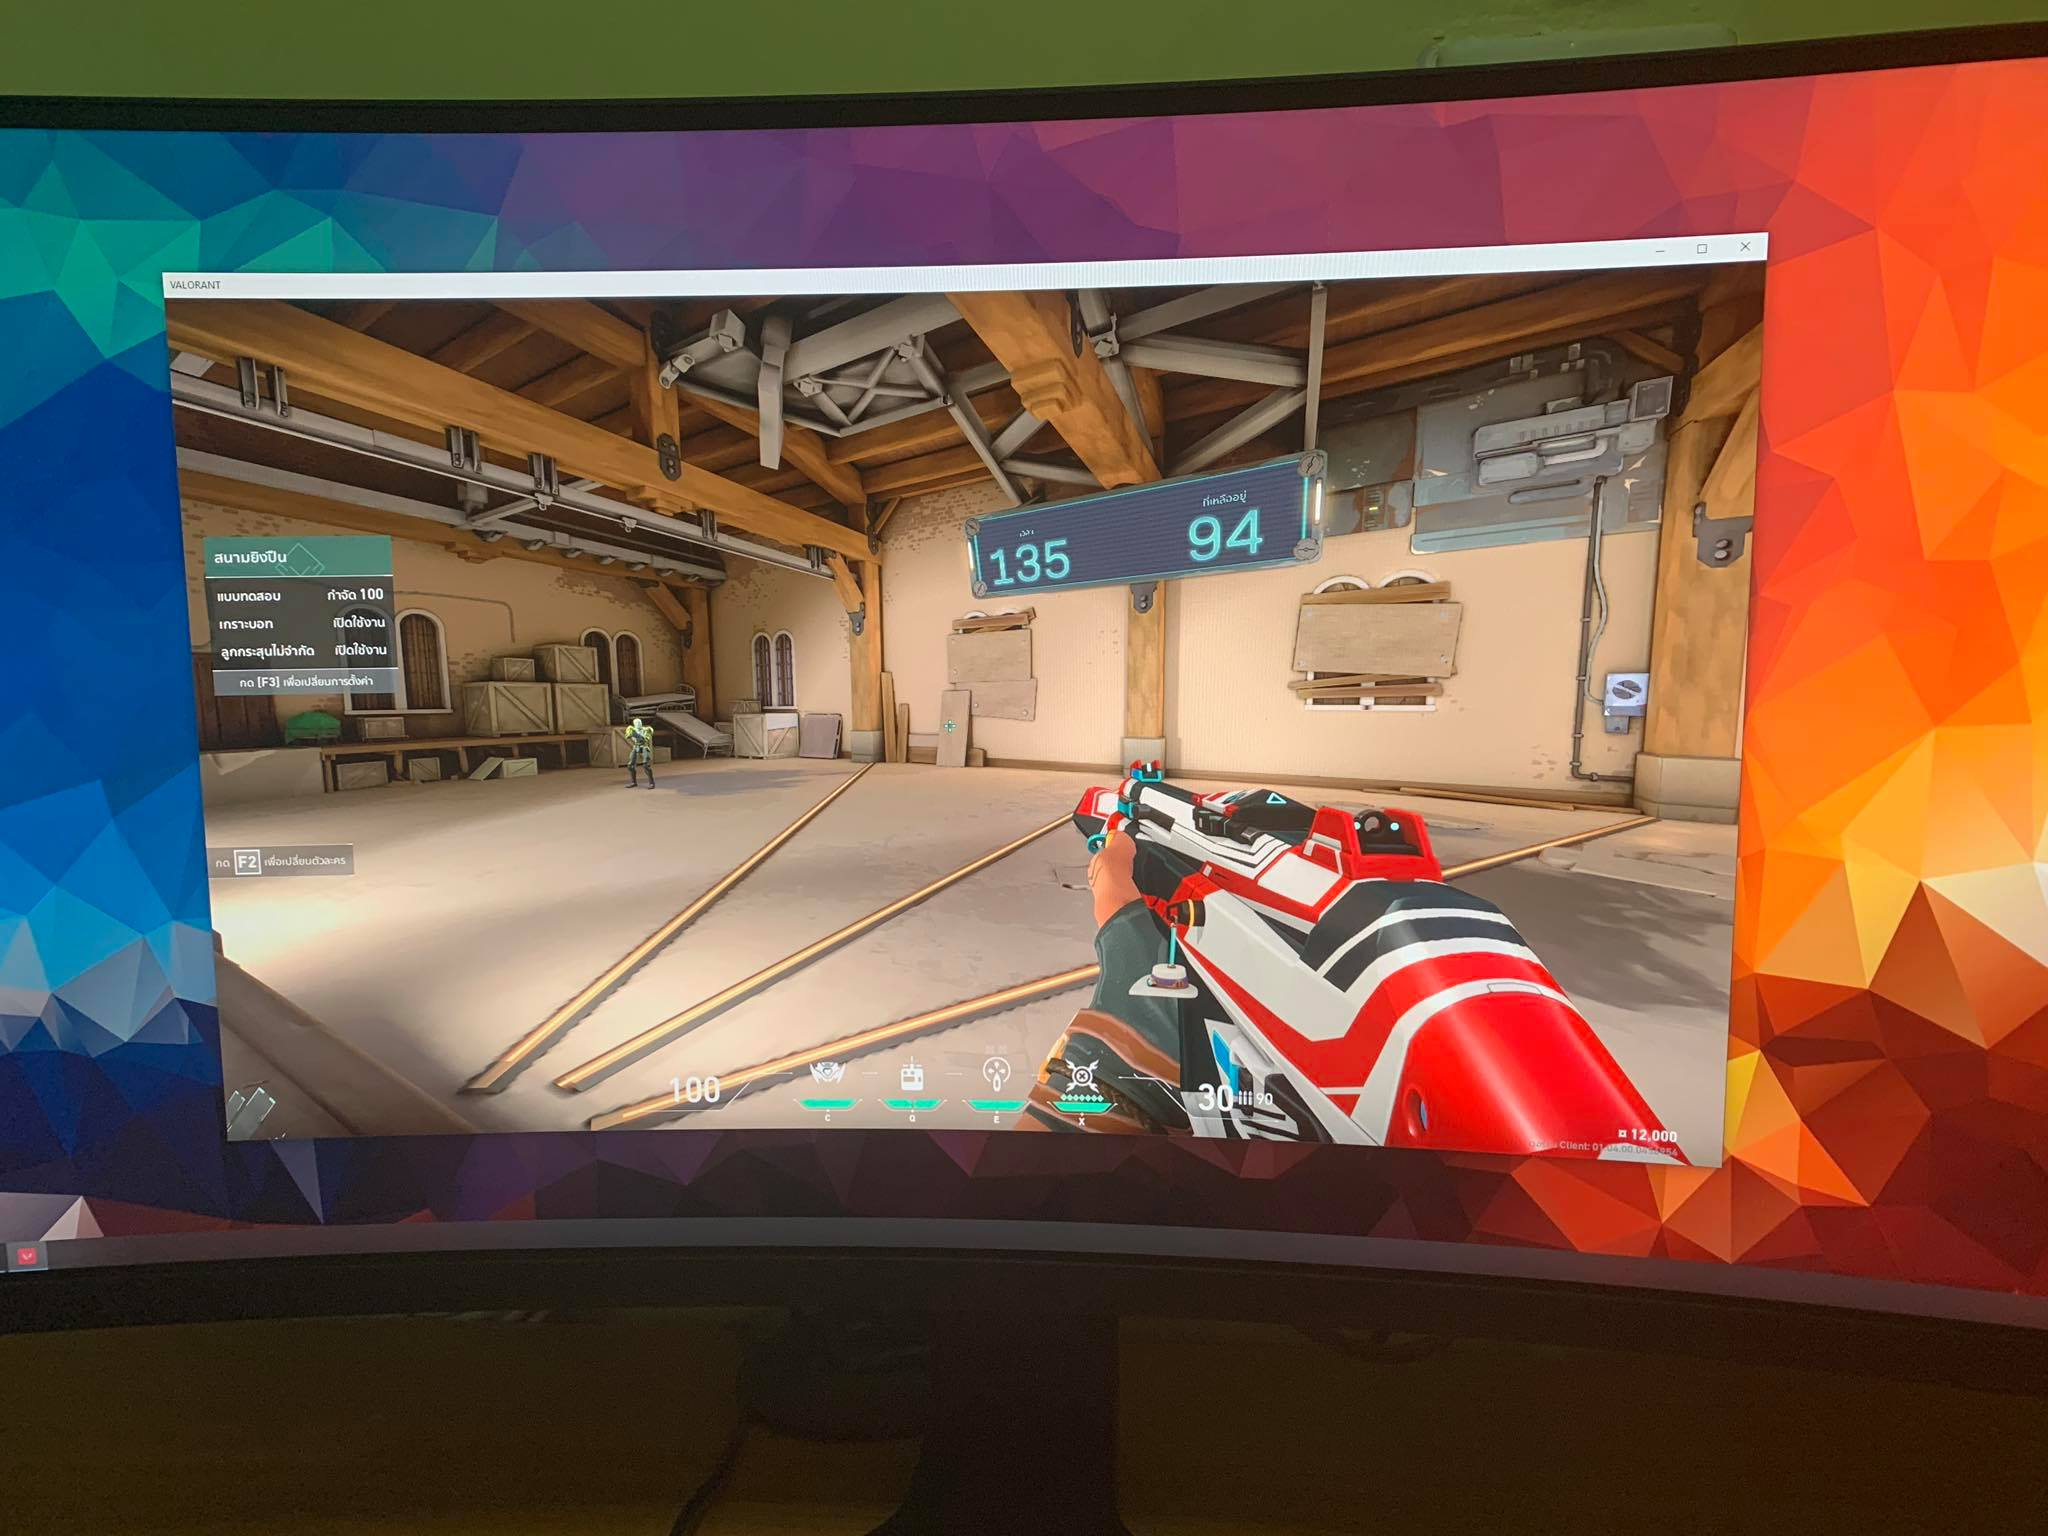 Mi Curved Gaming Monitor 1182020 2